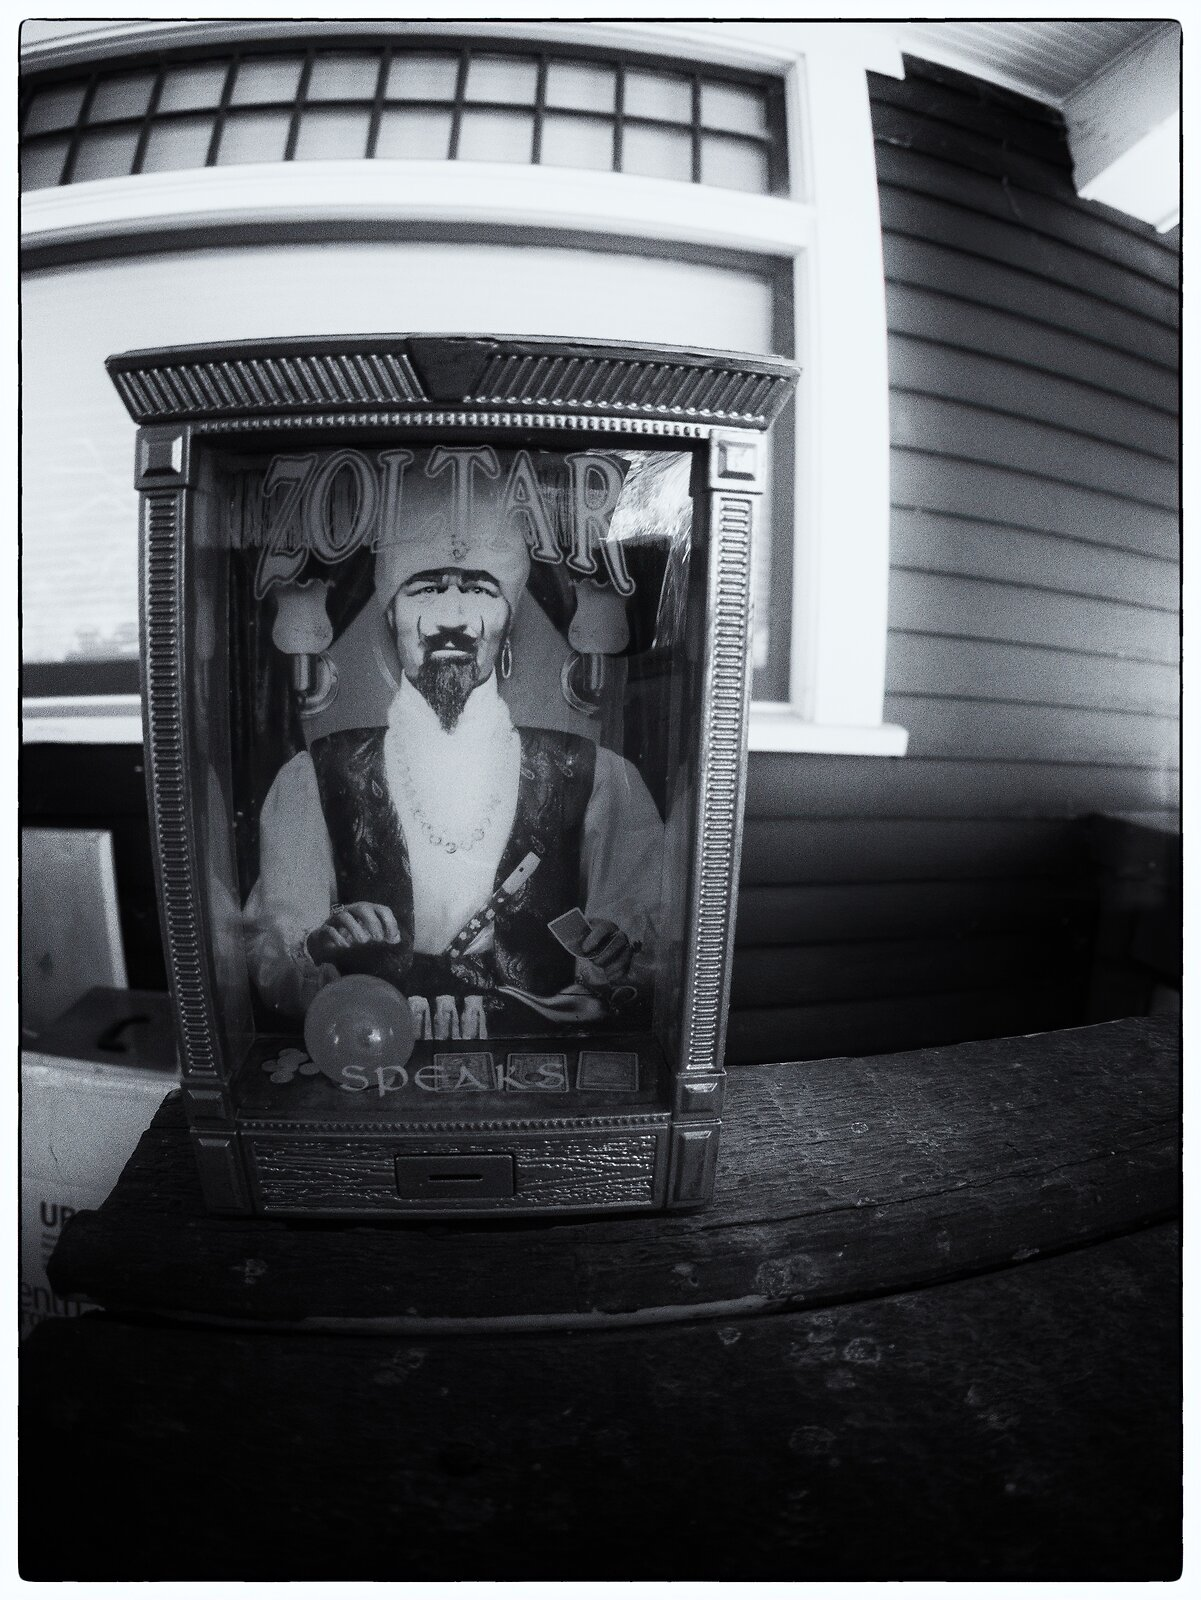 GX1_Feb23_21_Zoltar_Speaks.jpg